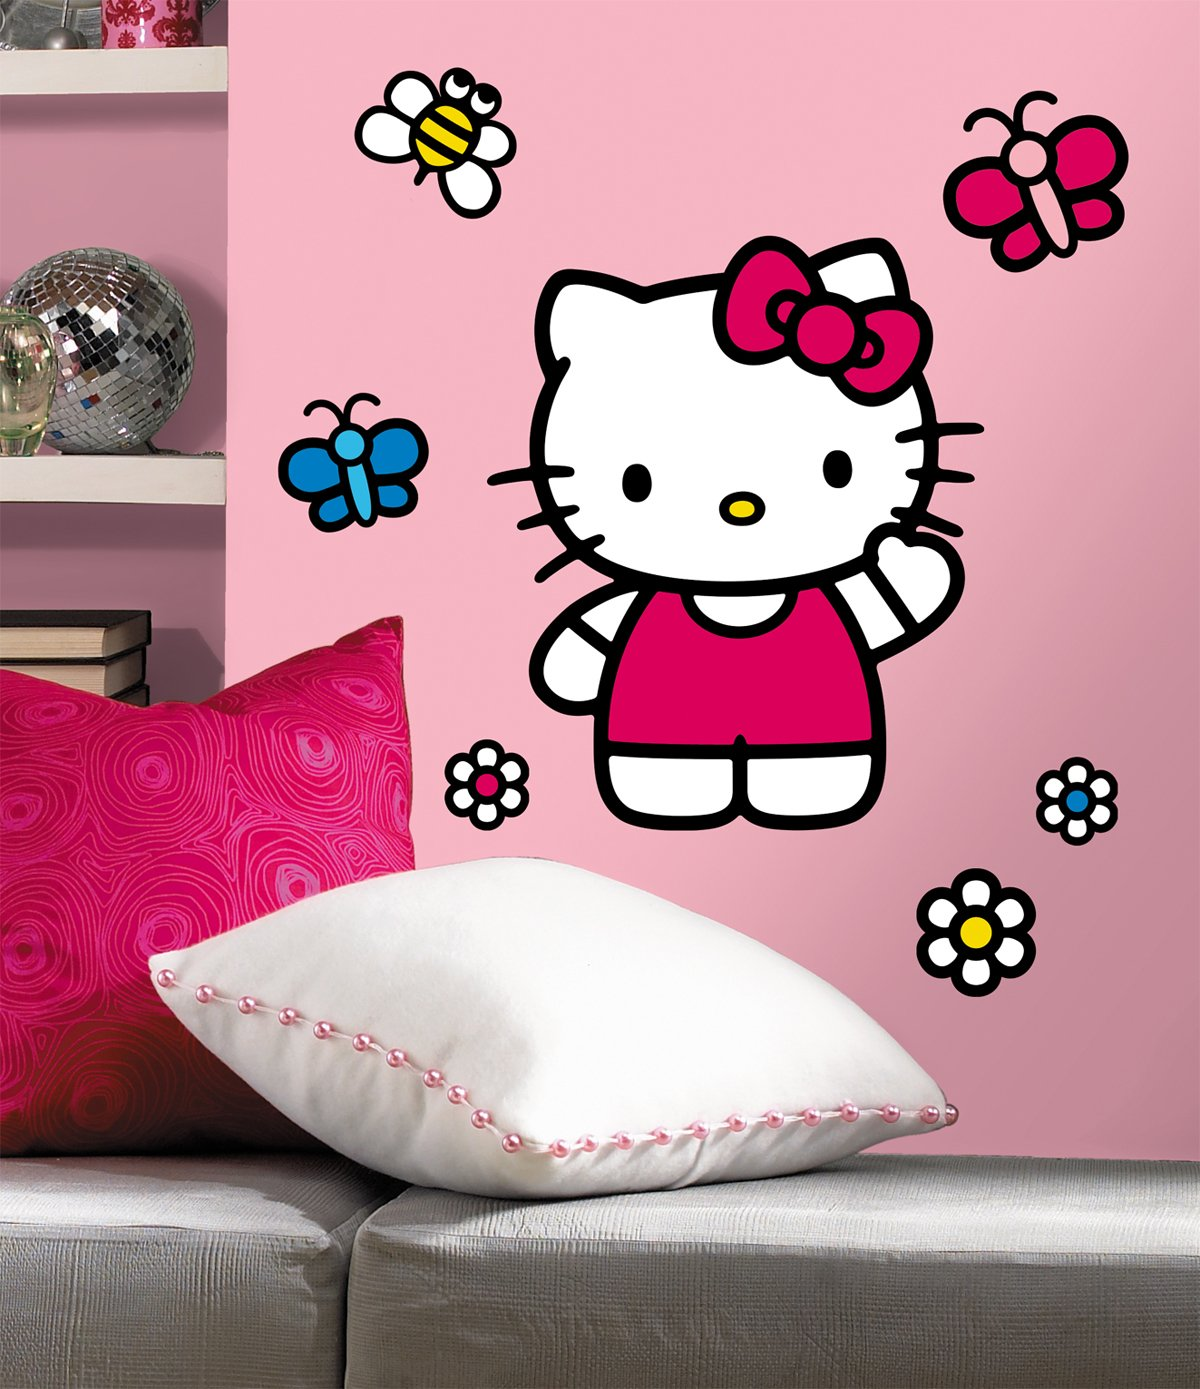 Beautiful Amazon.com: ROOMMATES RMK1679GM Hello Kitty The World Of Hello Kitty Peel  And Stick Giant Wall Decals: Home Improvement